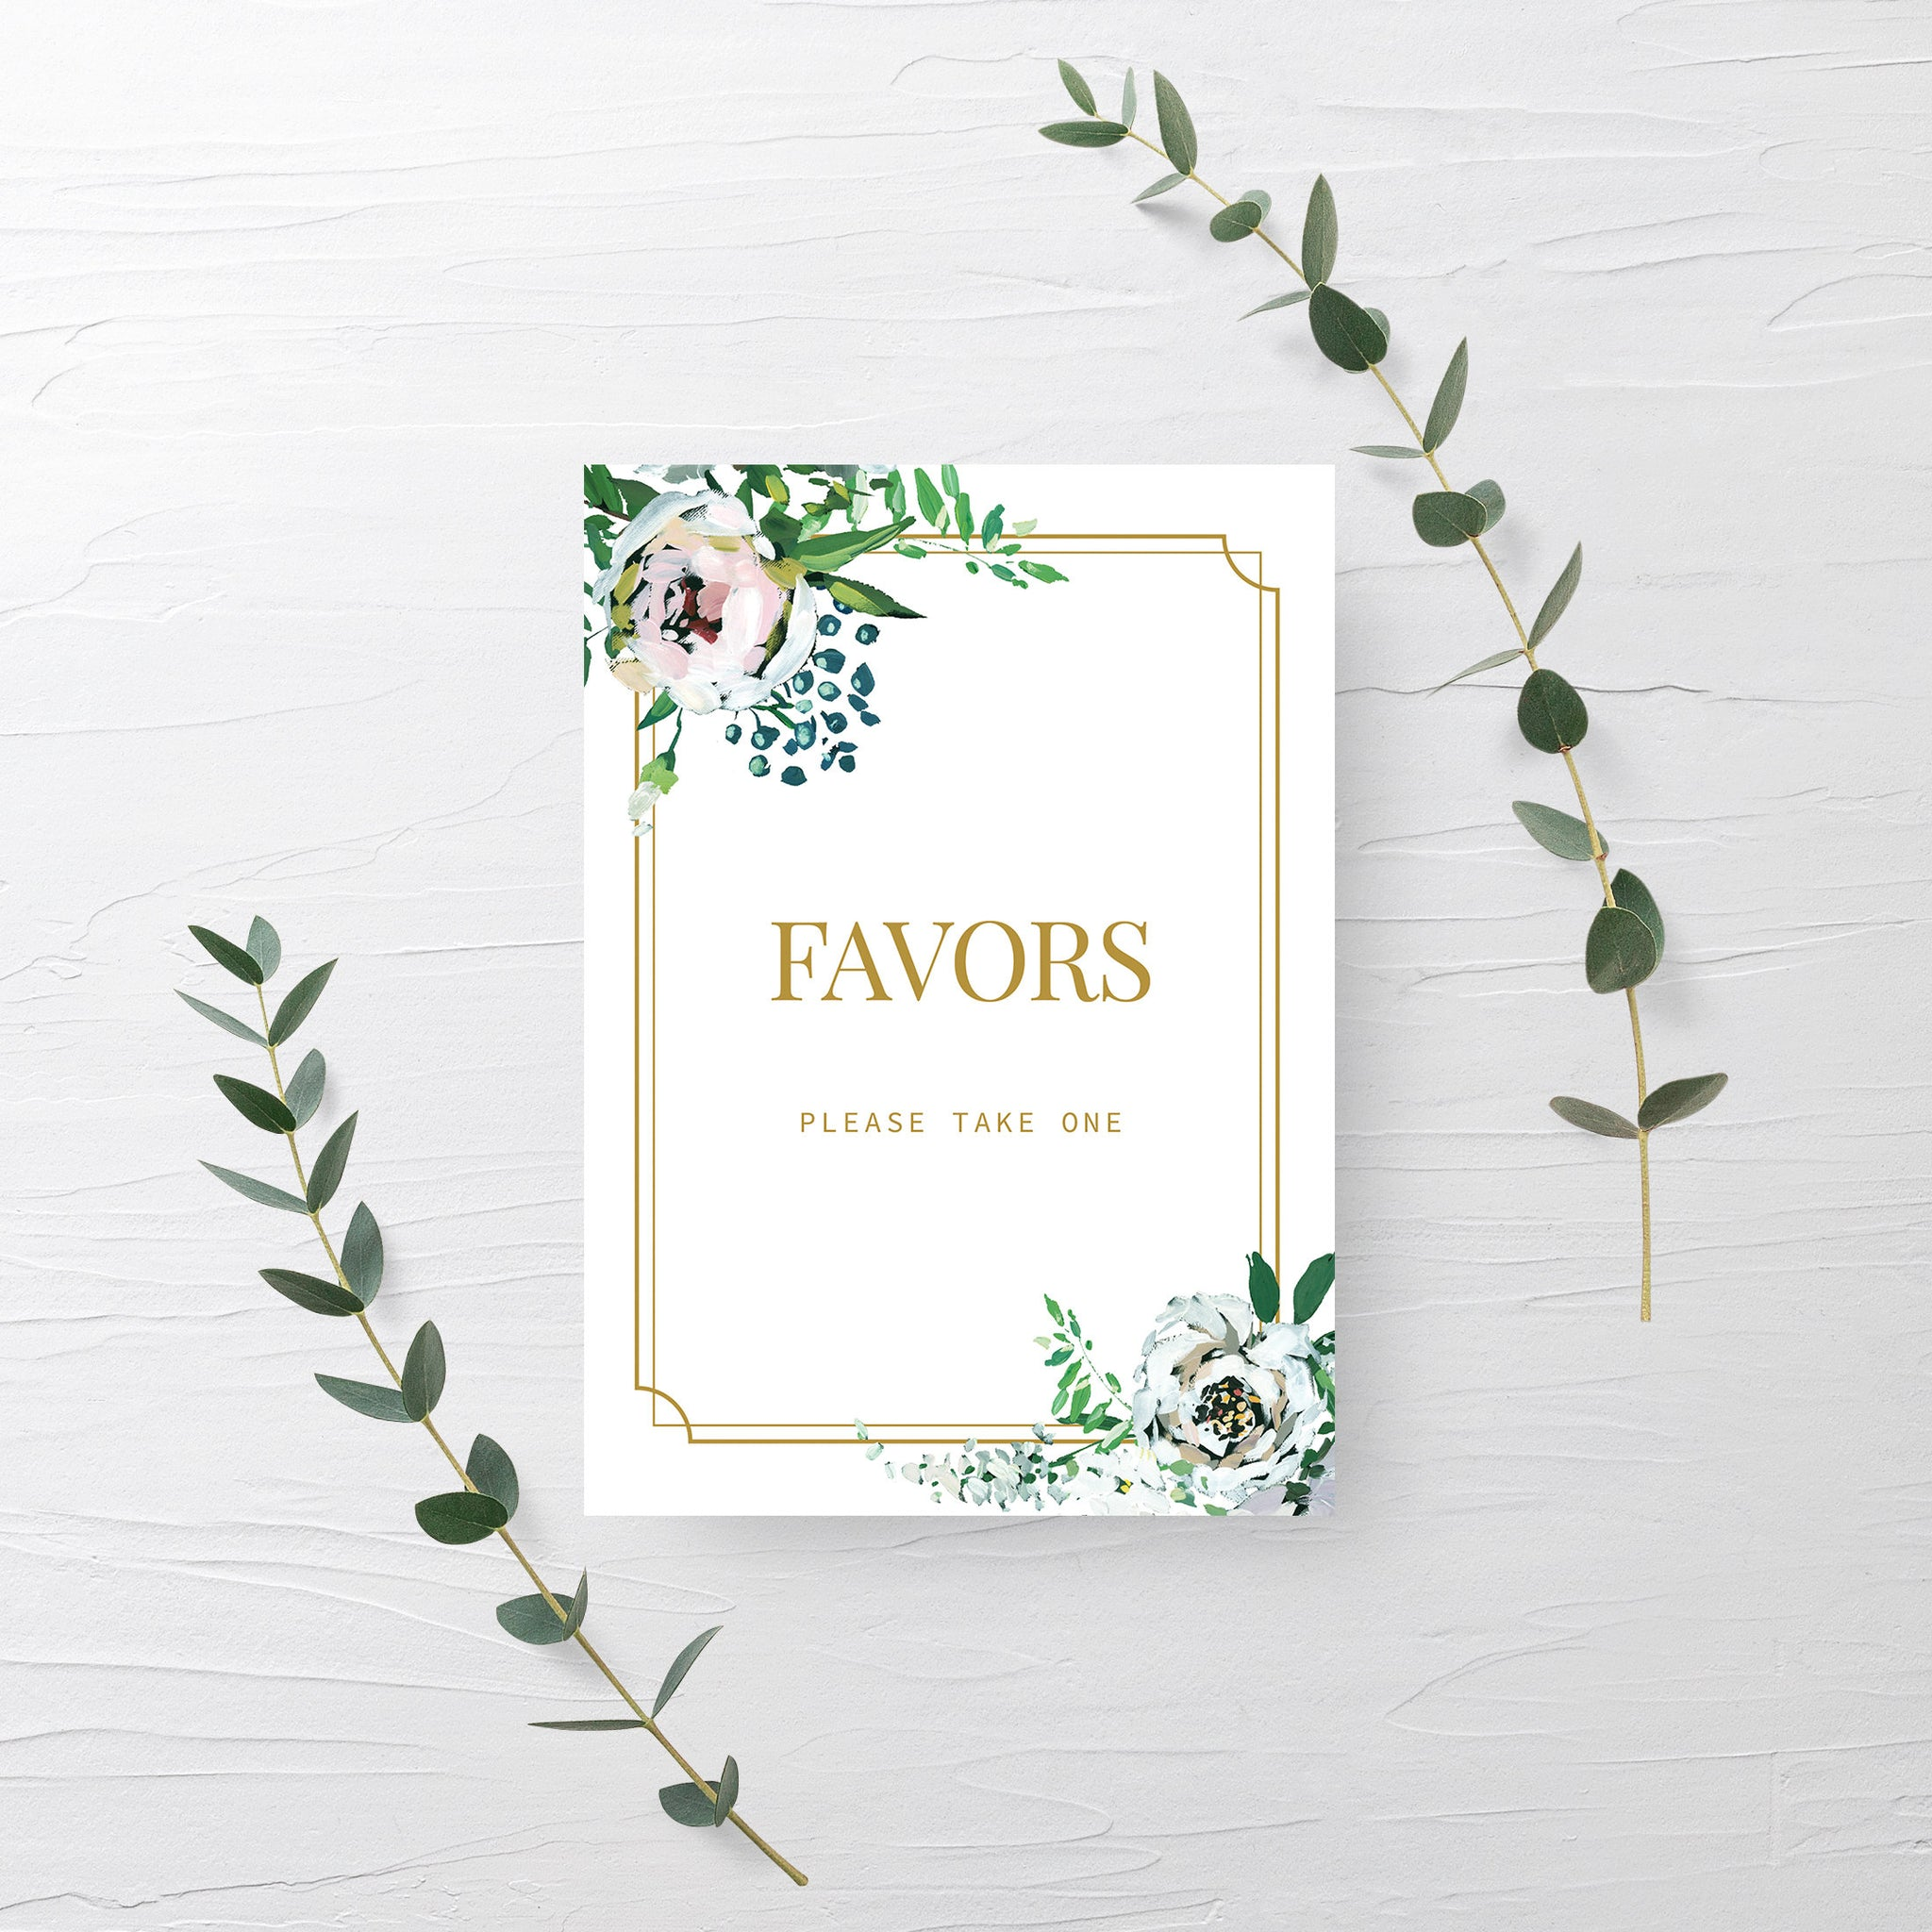 Blush Floral Greenery Favor Sign Printable INSTANT DOWNLOAD, Gold Birthday, Baby Shower, Bridal Shower, Wedding Decoration - BGF100